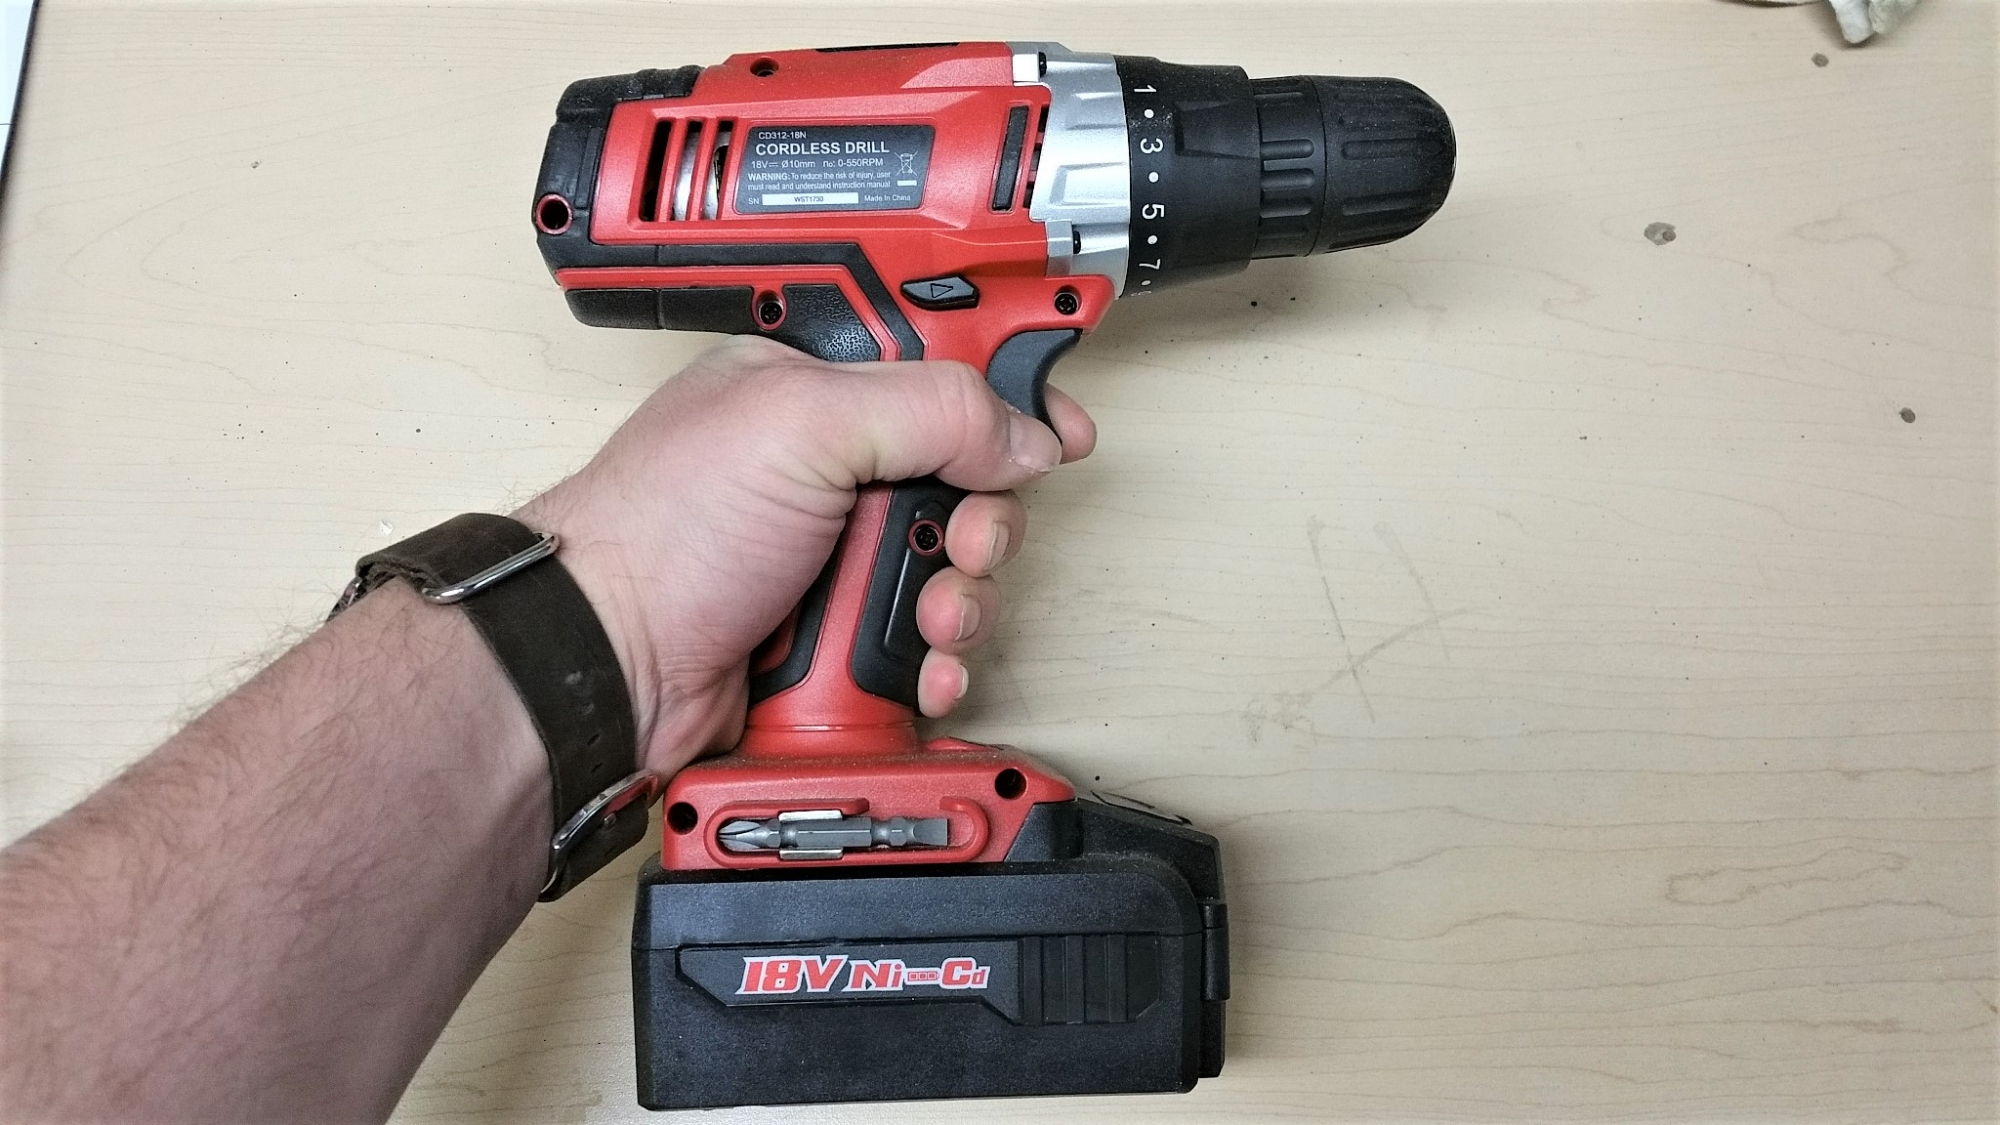 Great drill at an excellent price